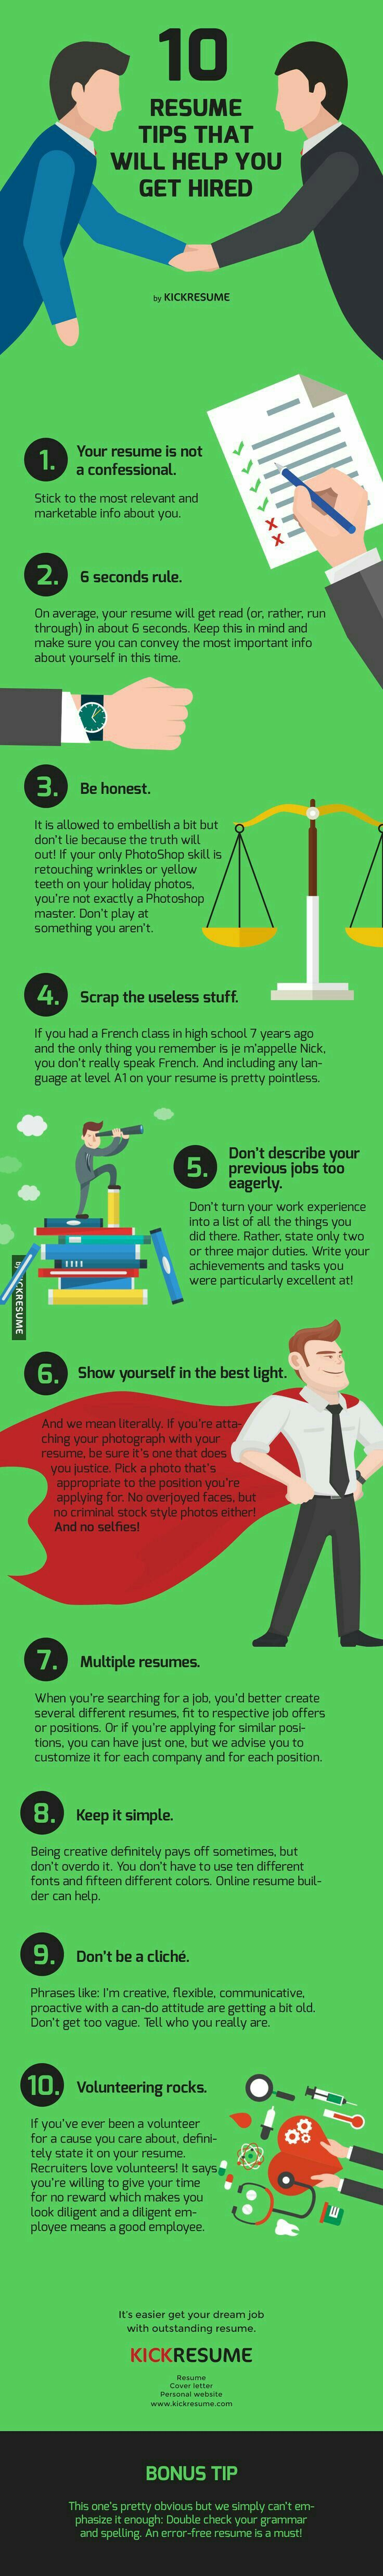 10 Resume Tips That Will Help You